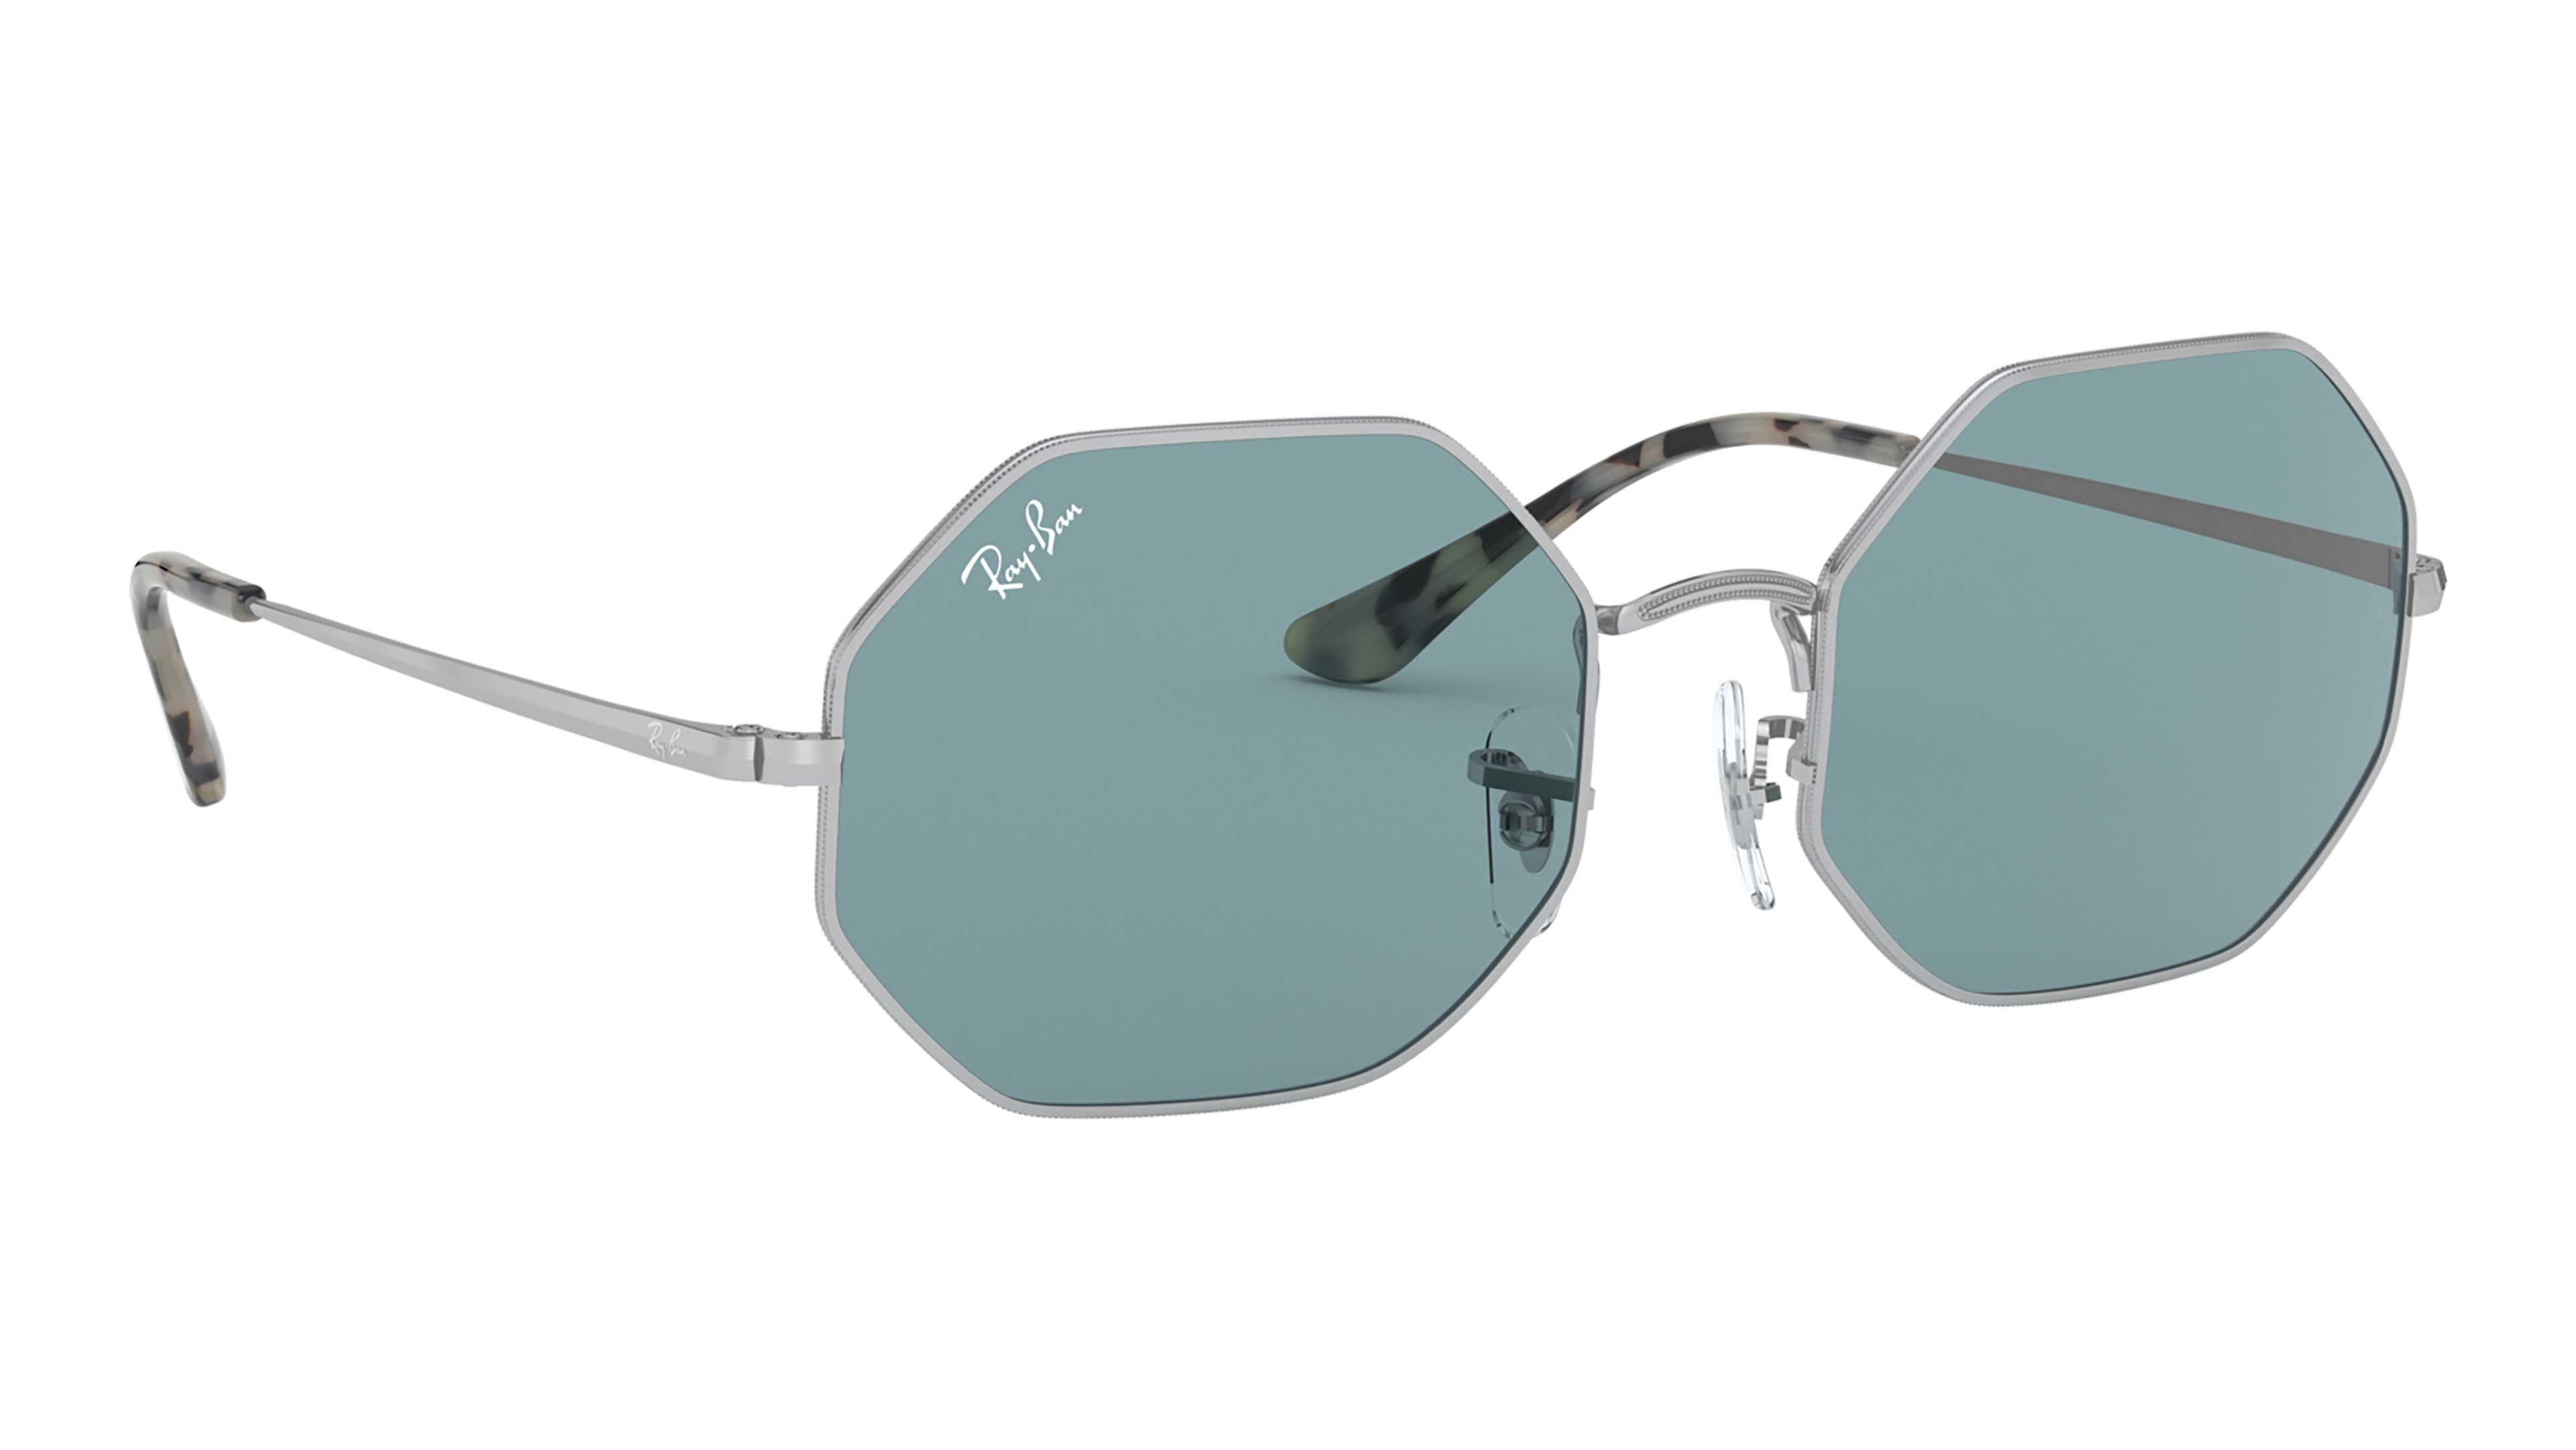 Angle_Right02 Ray-Ban Ray-Ban 0RB1972 919756 54/19 Zilver/Blauw